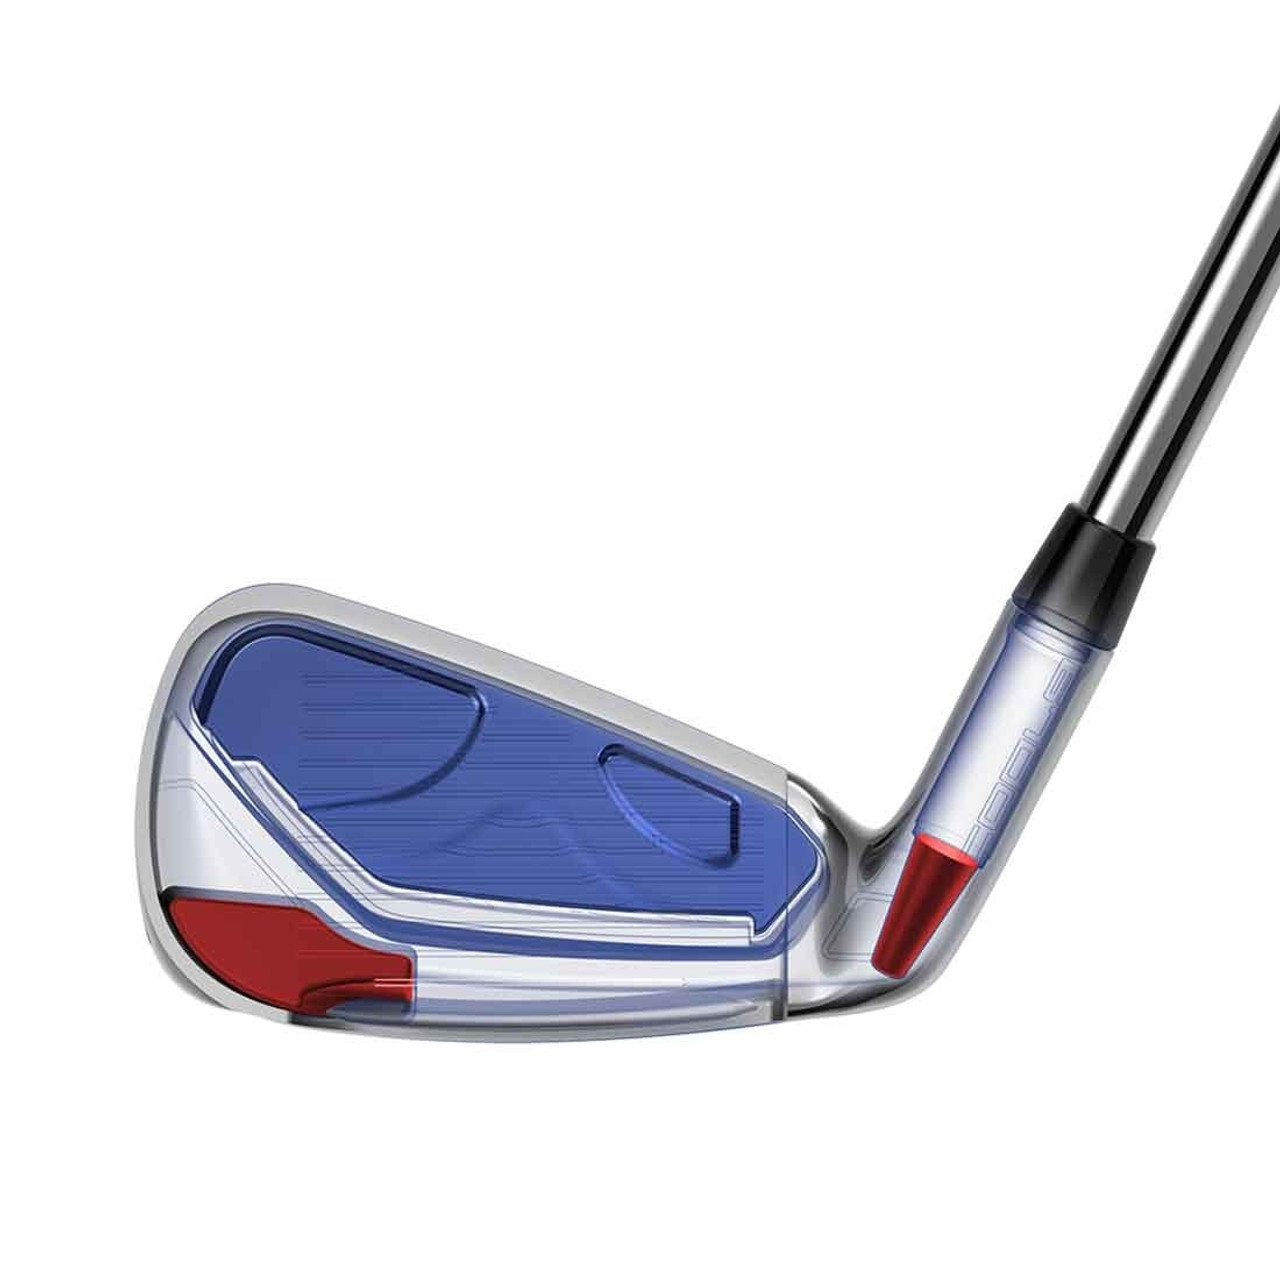 Cobra King F9 SPEEDBACK Individual Irons and Wedges